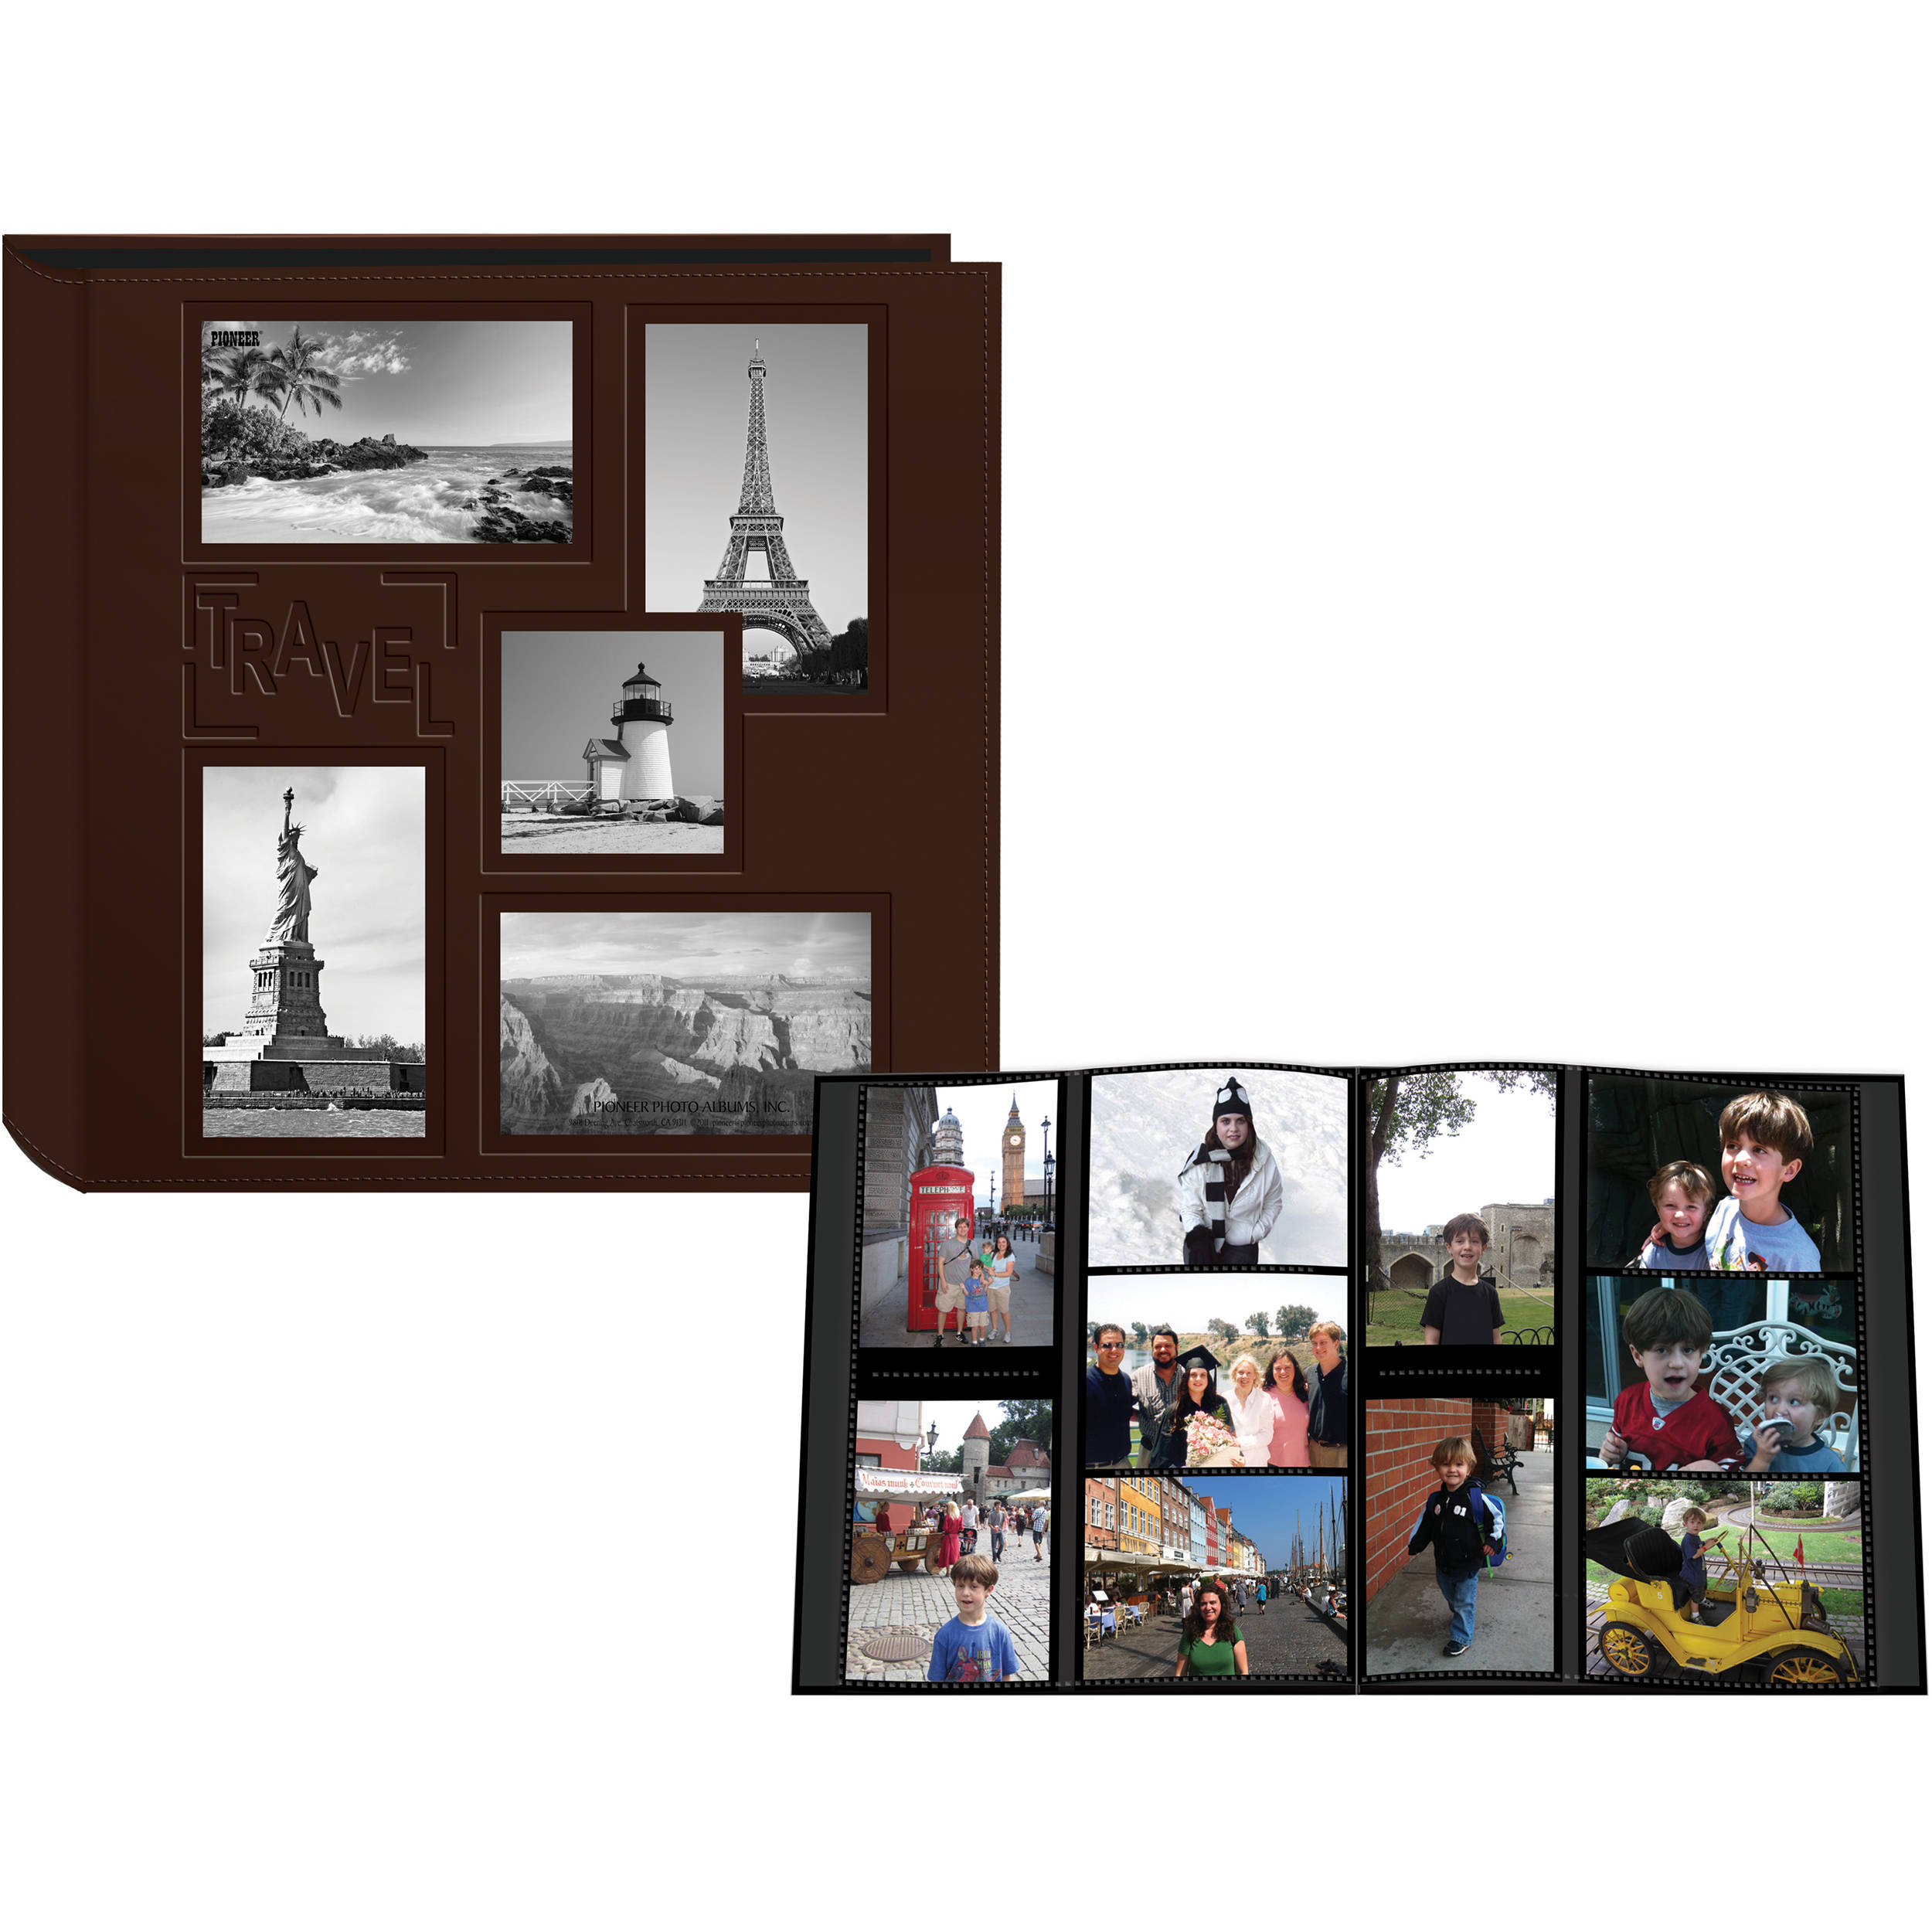 Snazzy Pioneer Photo Albums Collage Frame Embossed Sewn Learette Photo Album Pioneer Photo Albums Collage Frame Embossed Photo Frame Collage Ideas Photo Frame Collage Set houzz 01 Photo Frame Collage